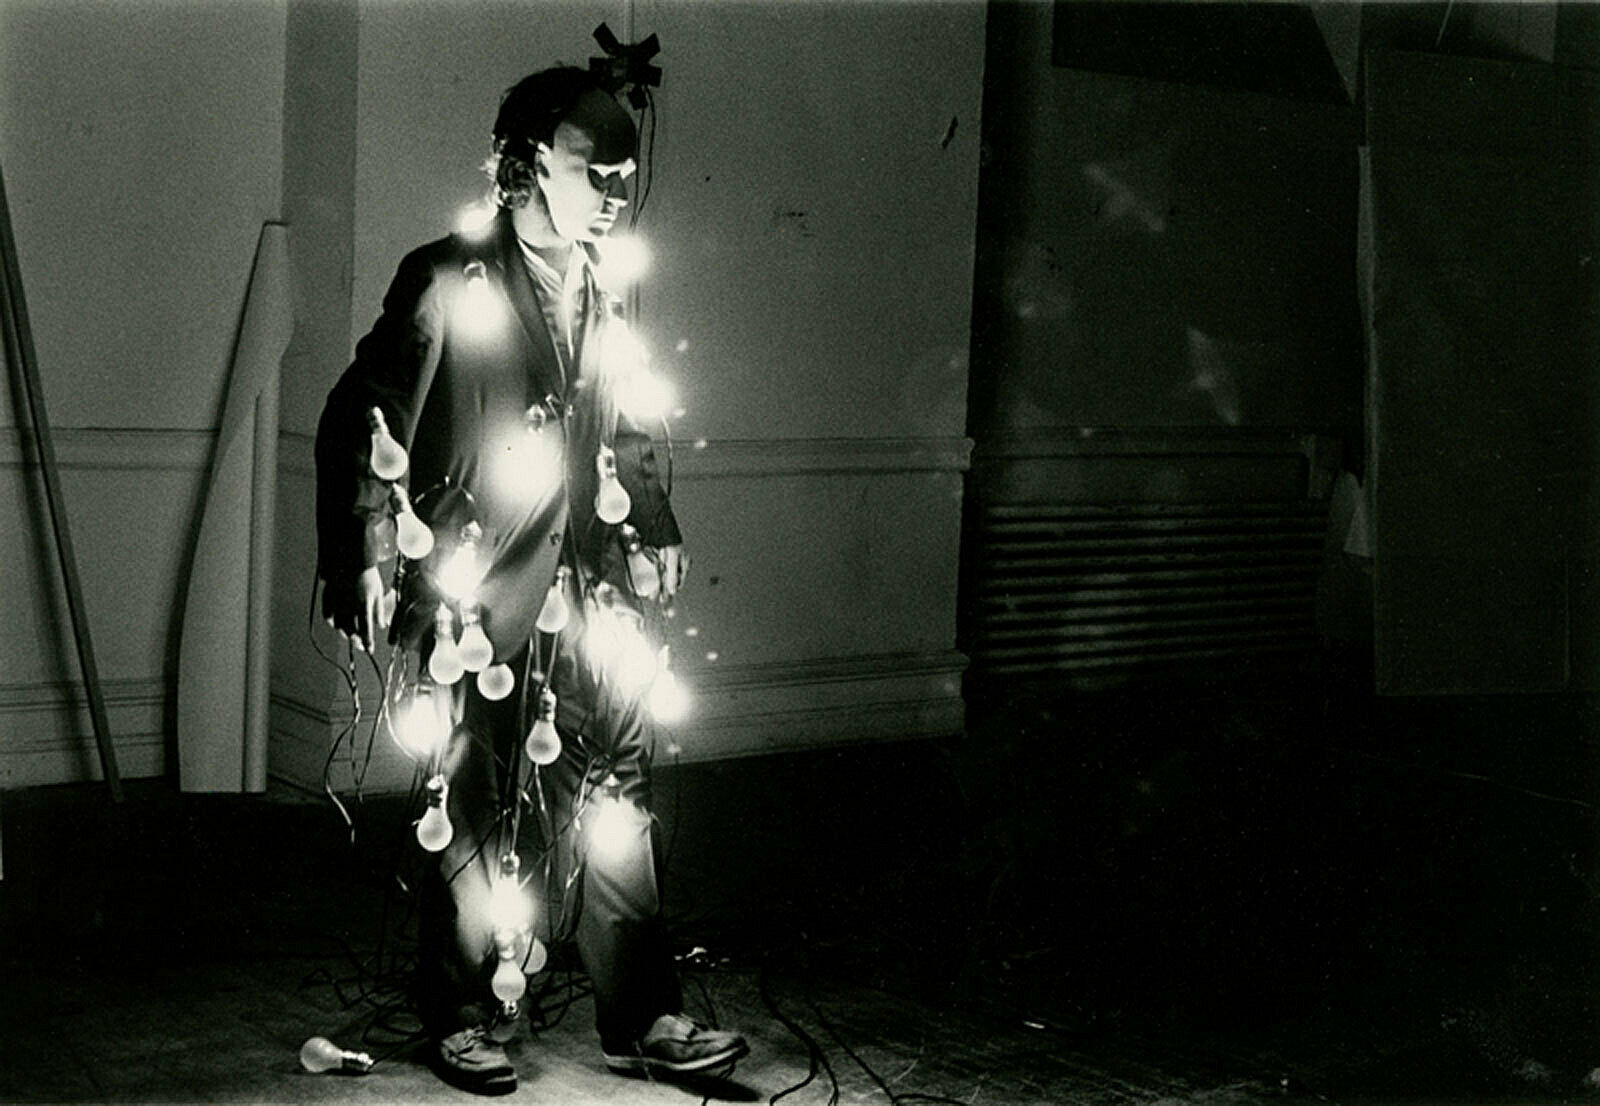 The artist Jared Bark, masked and wrapped in a string of light bulbs.